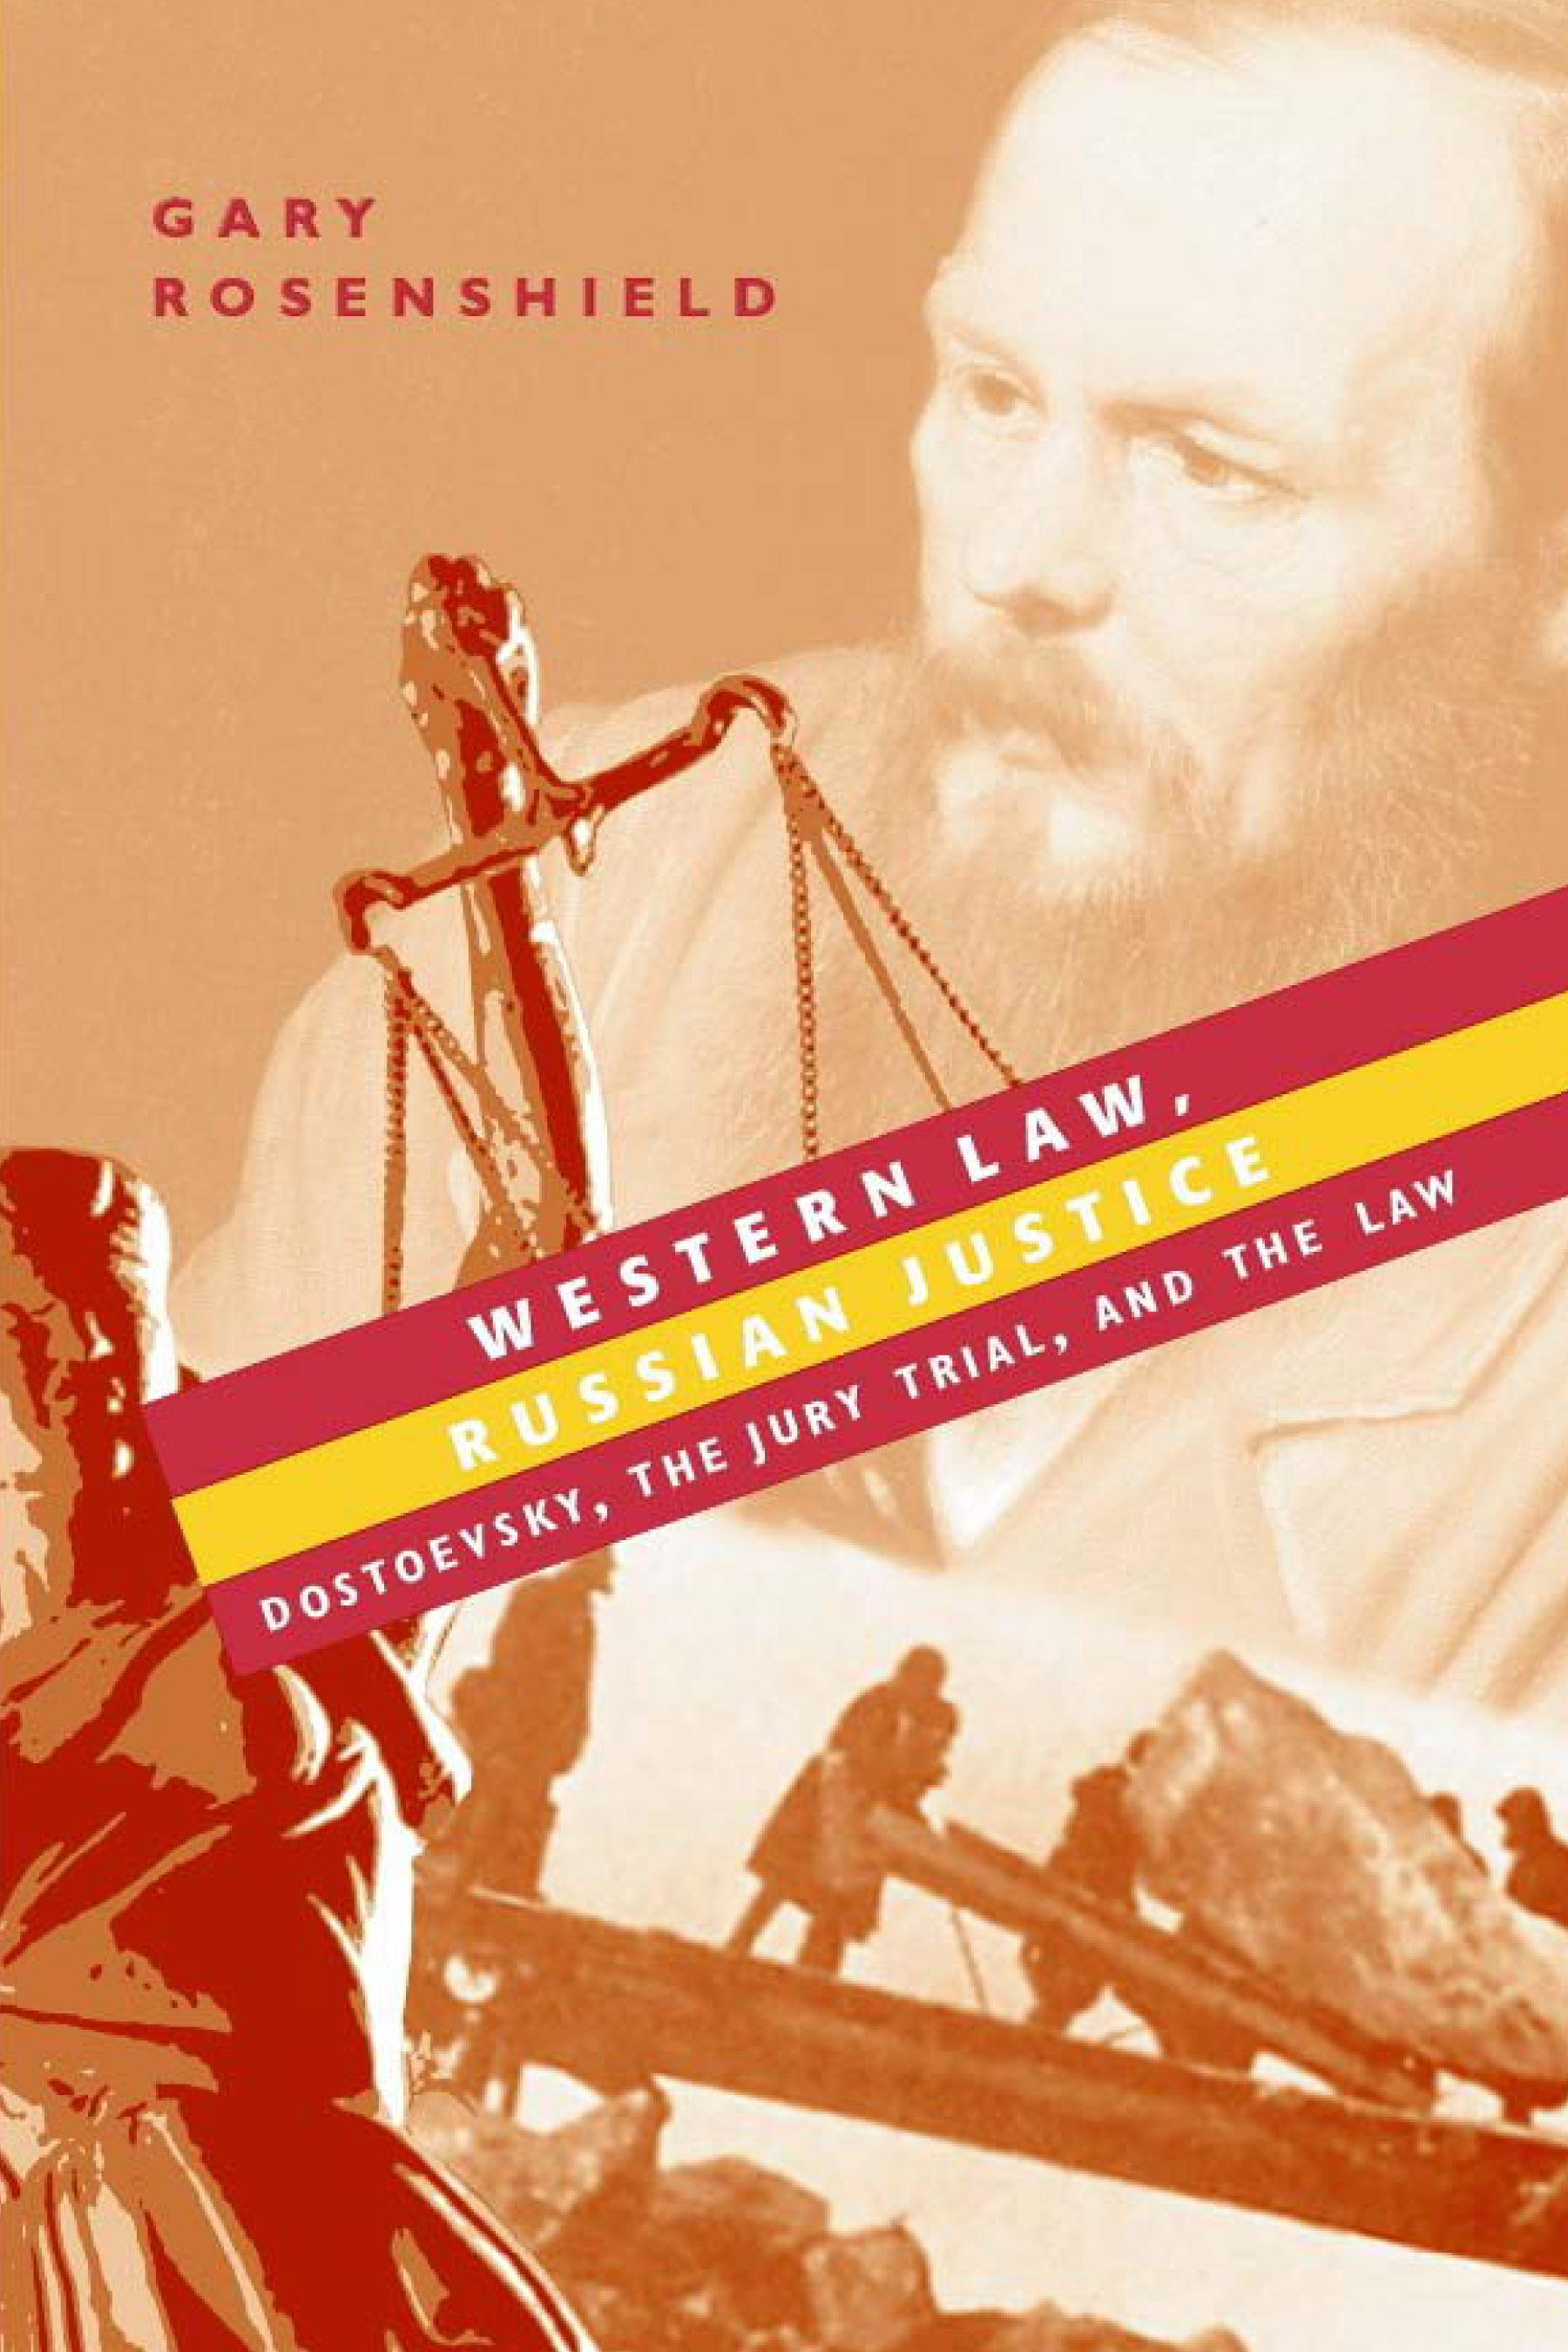 Western Law, Russian Justice: Dostoevsky, the Jury Trial, and the Law EB9780299209339